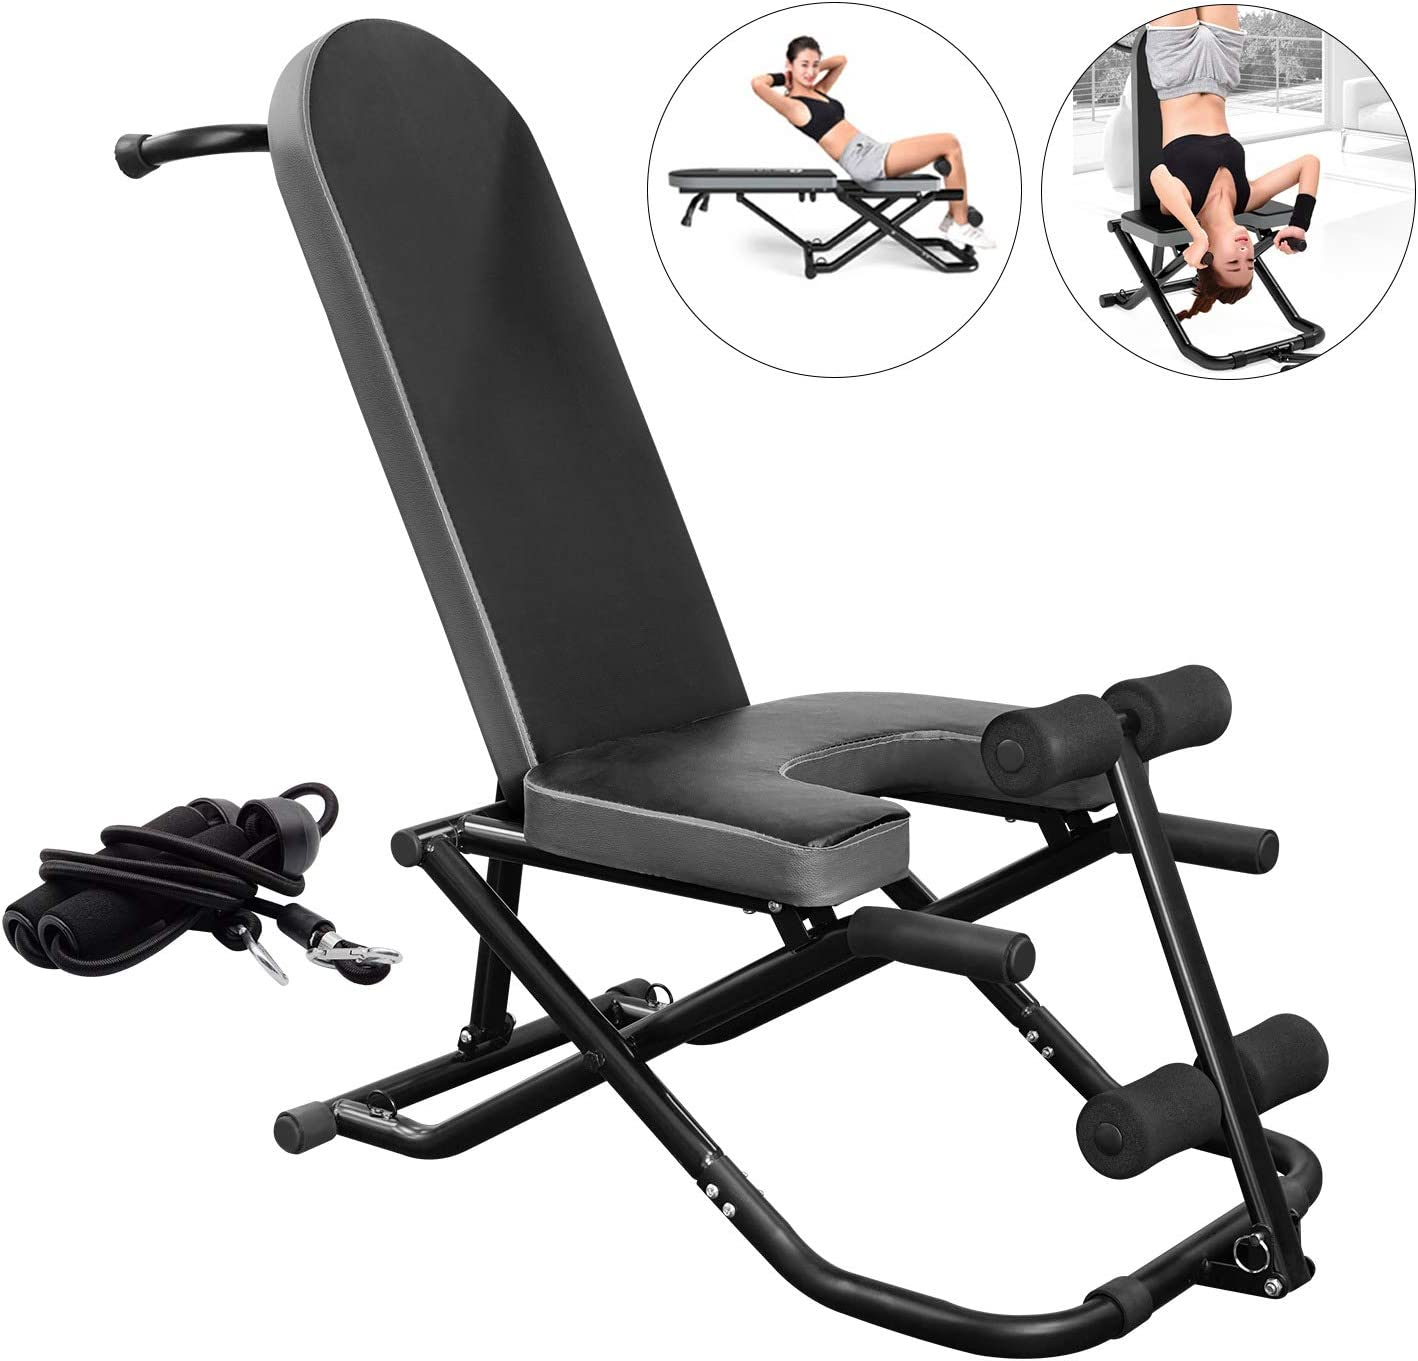 AticaSport Handstand Bench Inversion Chair Stool Sit-ups Fitness Push-ups Machine Home Gym Workout Foldable Equipment